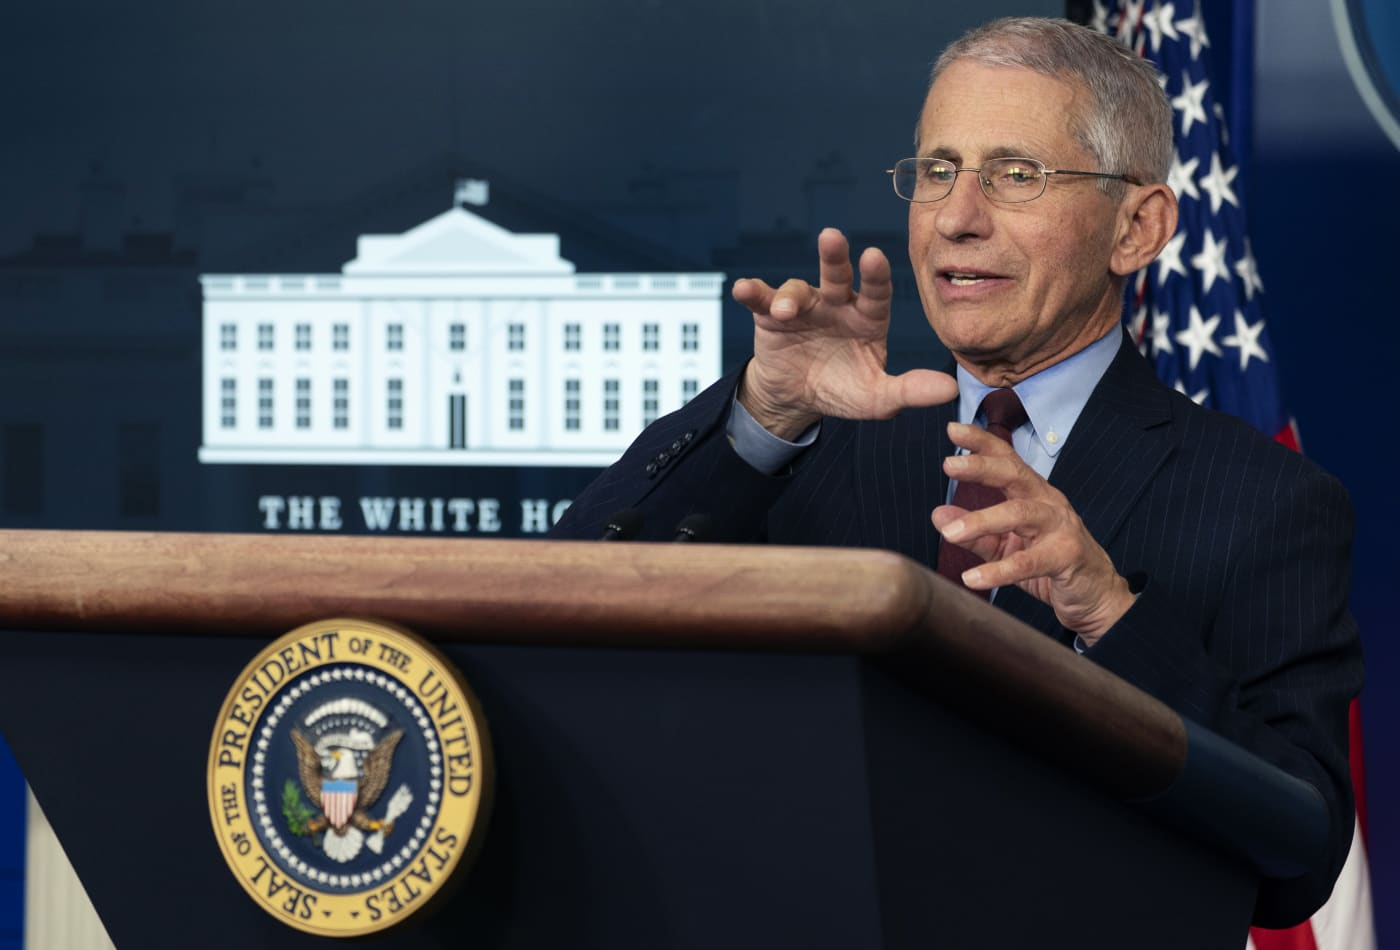 White House advisor Fauci says coronavirus vaccine trial is on target and will be 'ultimate game changer'